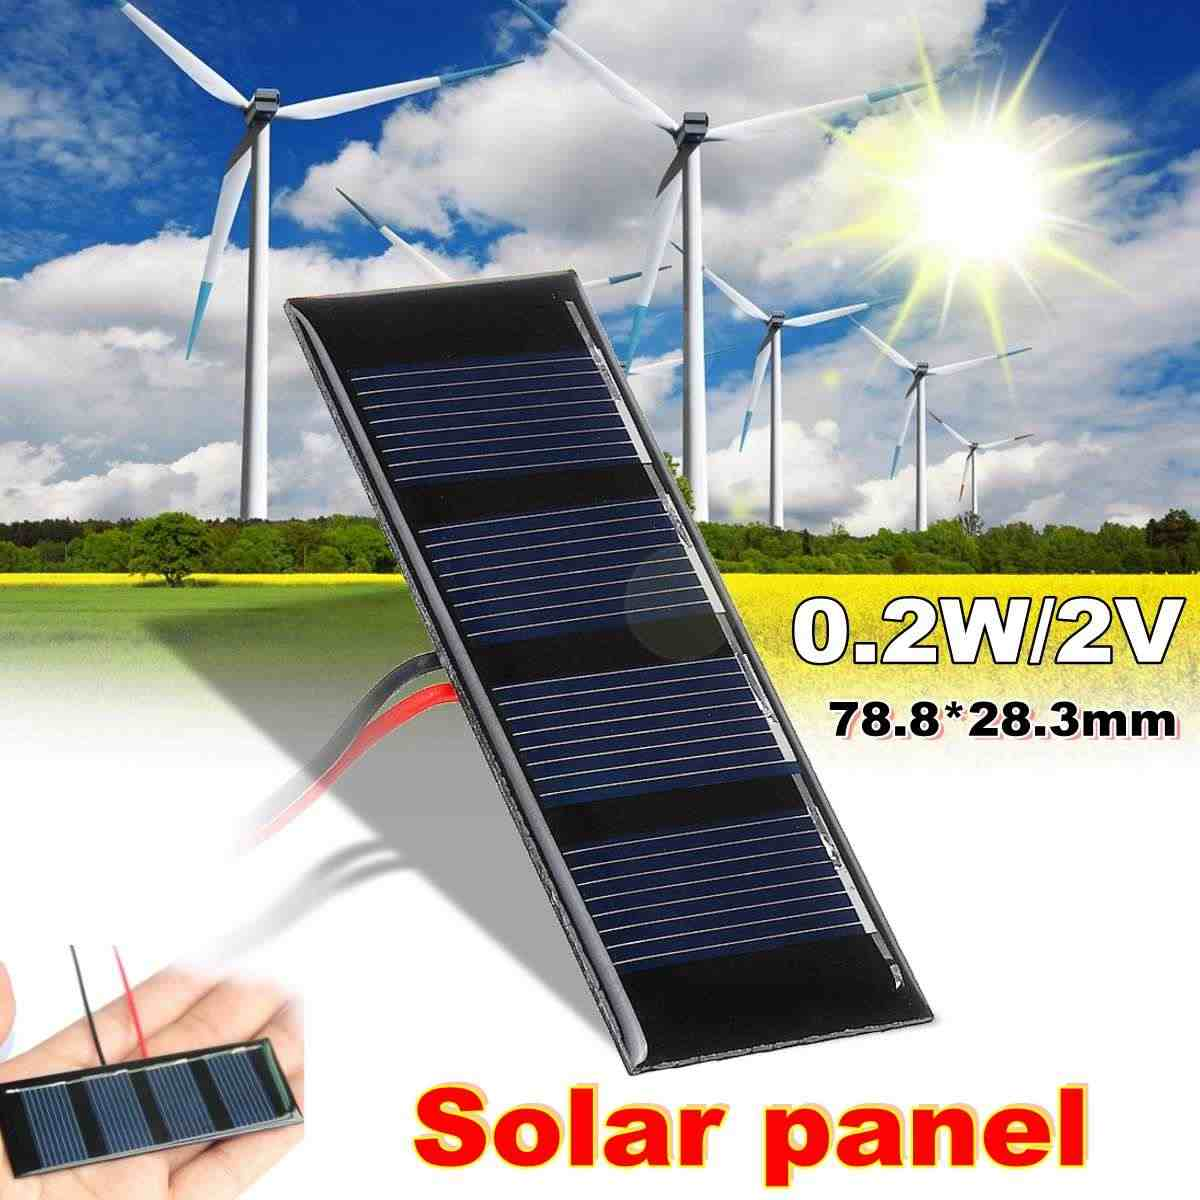 LEORY Solar Panel 2V 0.2W Solar Charger 5V Phone Battery Charger 2V Mini DIY Epoxy Polycrystalline Cells For Cellphone